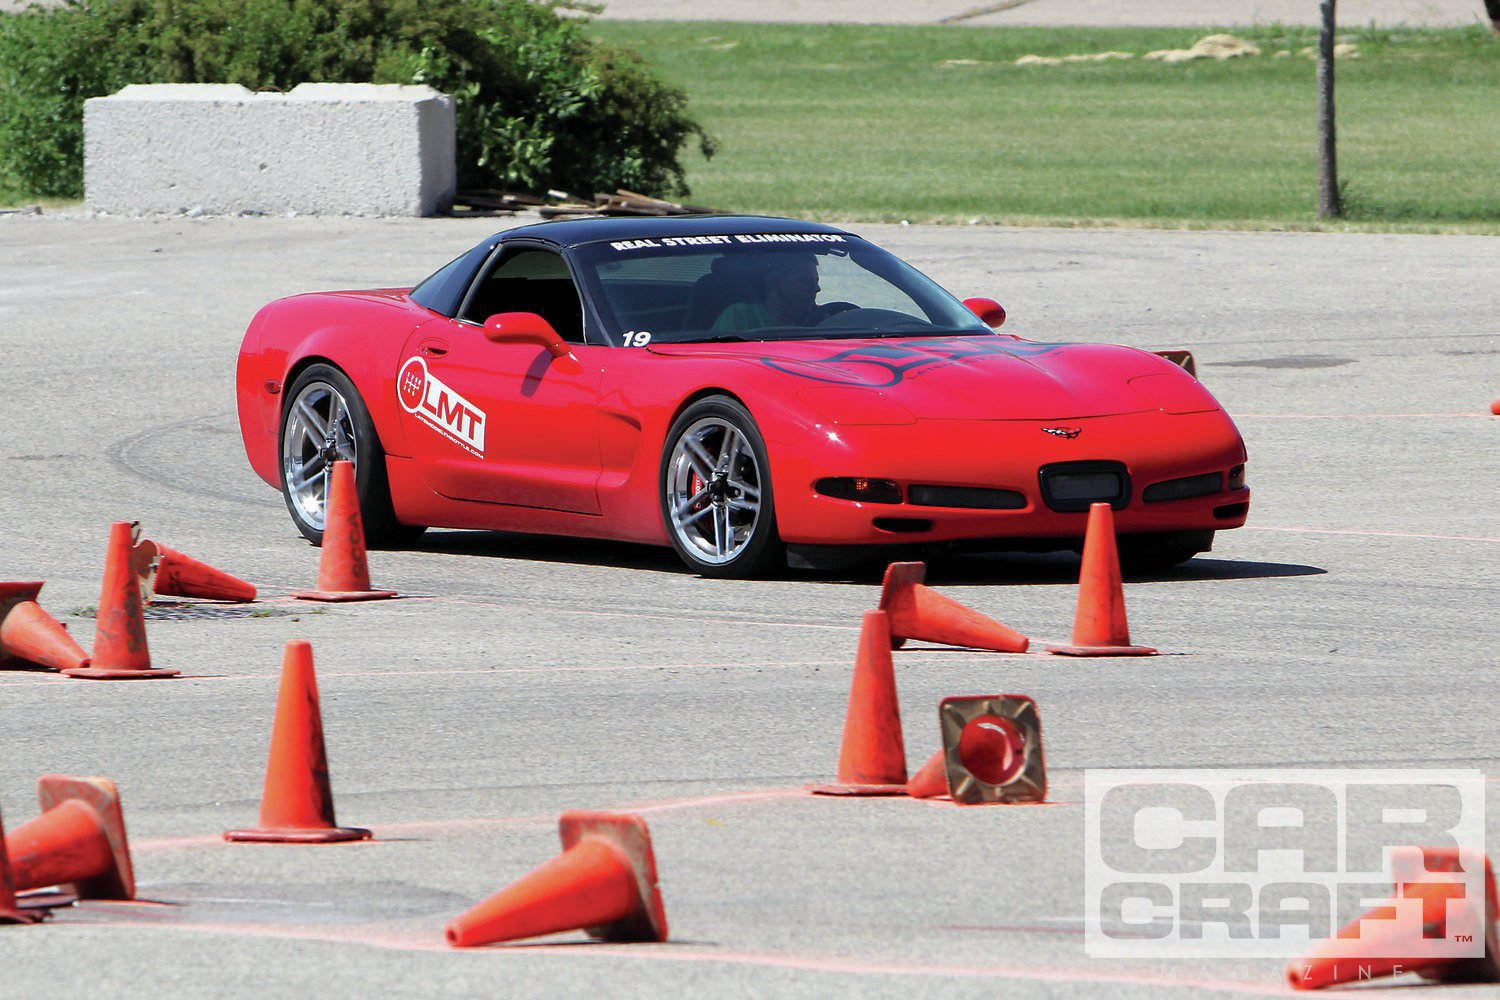 Jeff Smith took the Corvette Viper class by virtue of twin-turbo power and excellent overall autocross times. The engine is built from a stock, iron-block LQ4 6.0L with a stock crank, Eagle rods, and Diamond pistons with a Comp cam and stock LS3 heads. The twin Turbonetics turbos are mounted down low, so the engine almost appears stock. Almost…